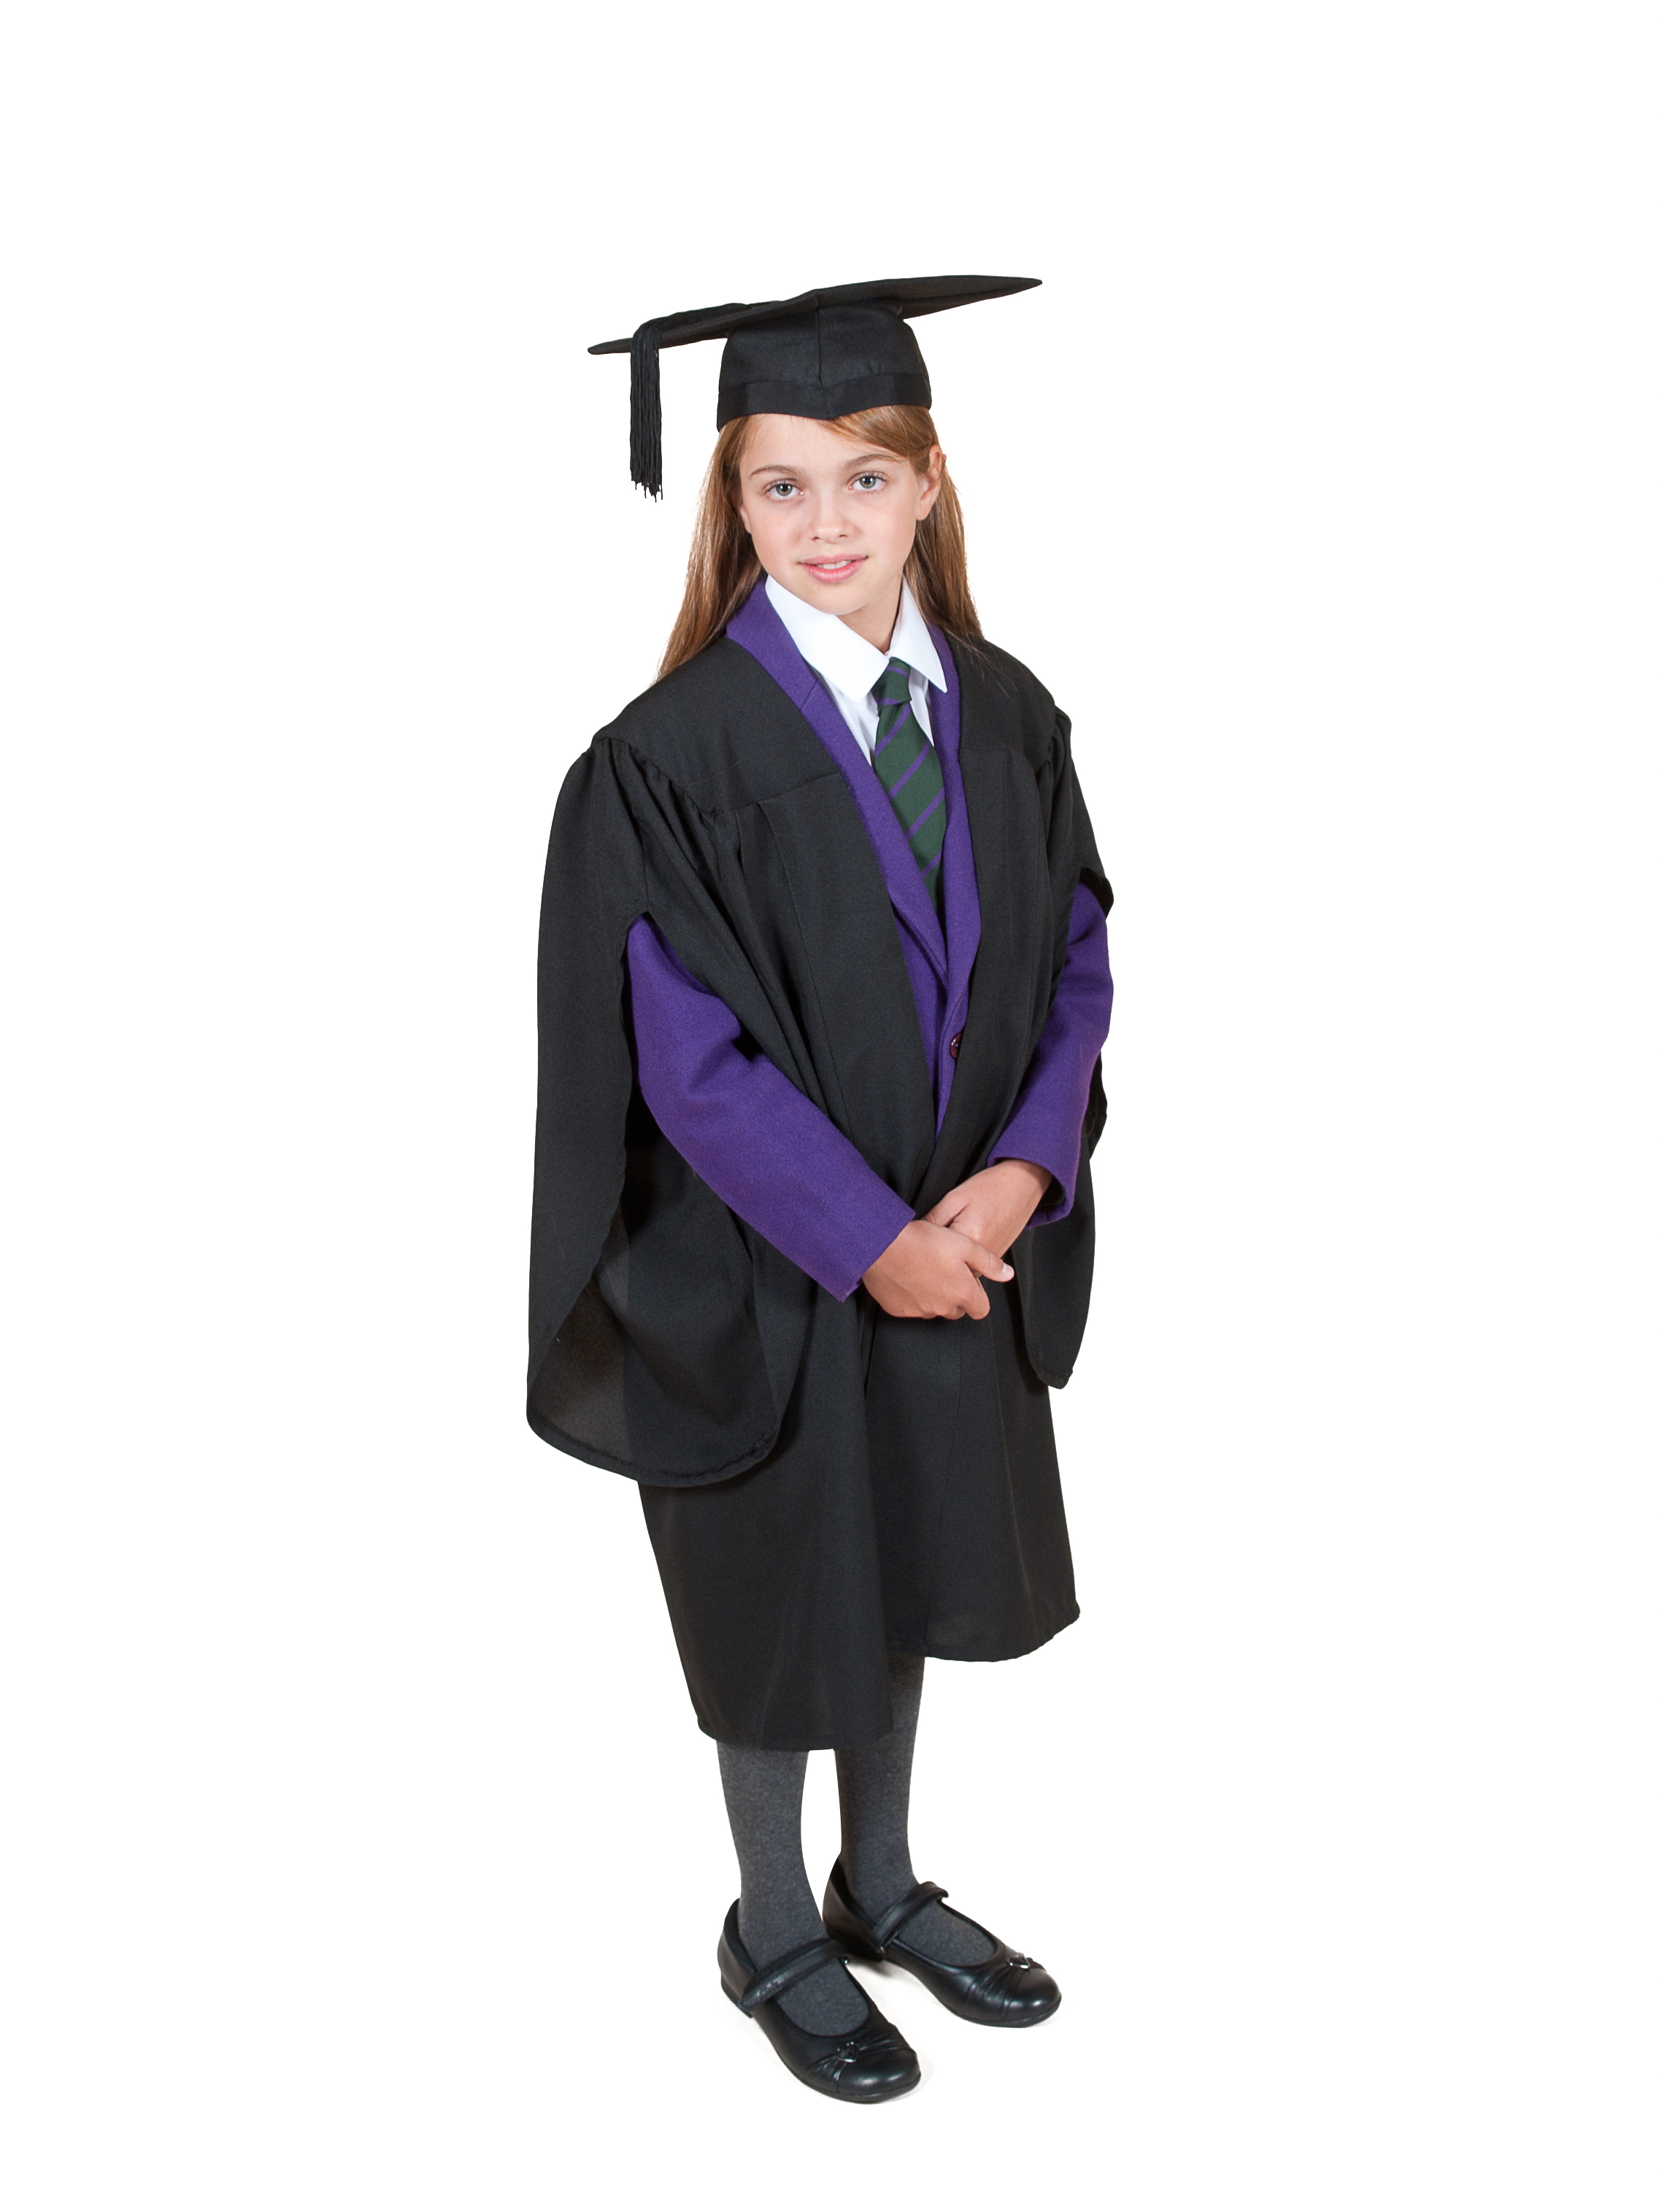 School Gowns: Graduation Gowns for Kids & Young Adults